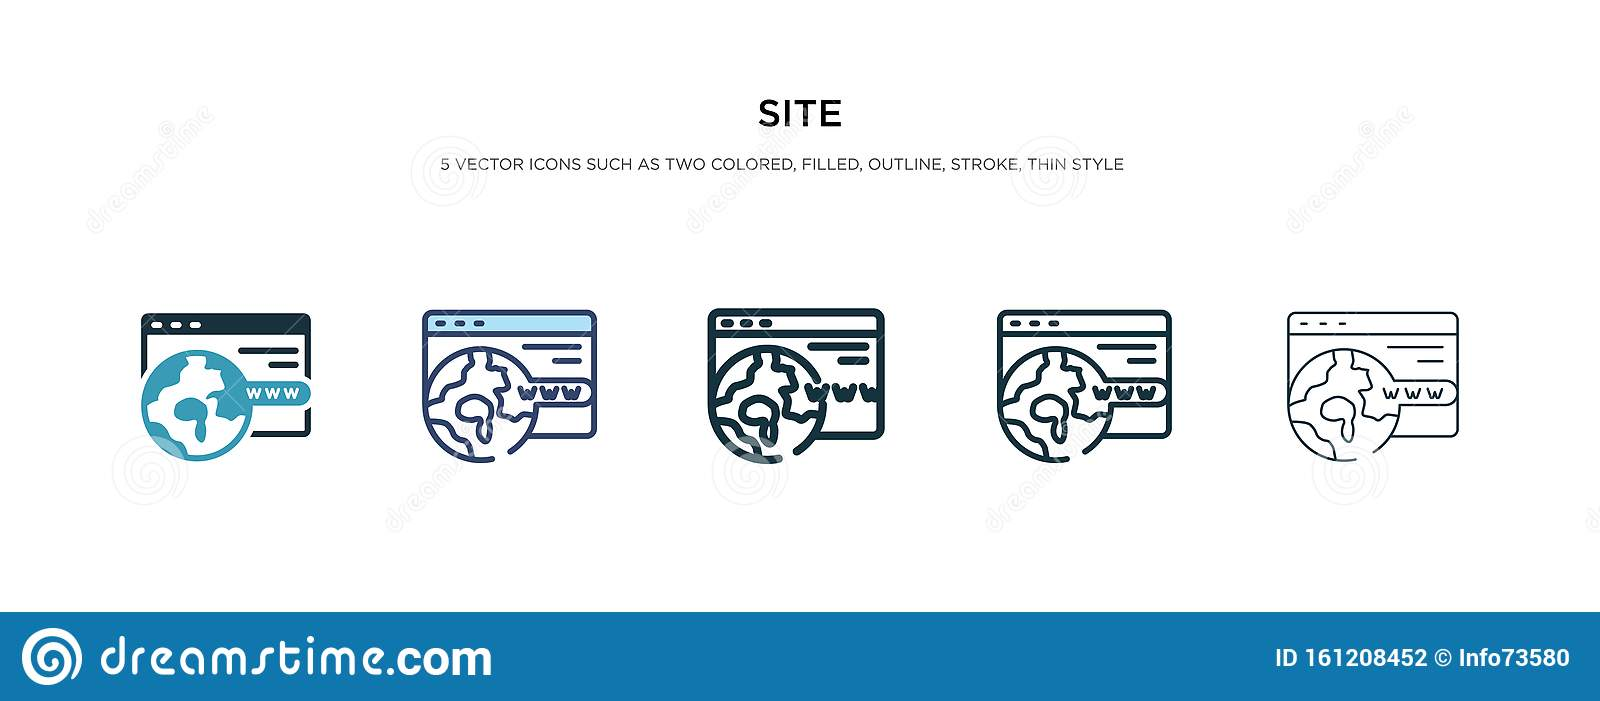 Site icon in different style vector illustration. two colored and black site vector icons designed in filled, outline, line and